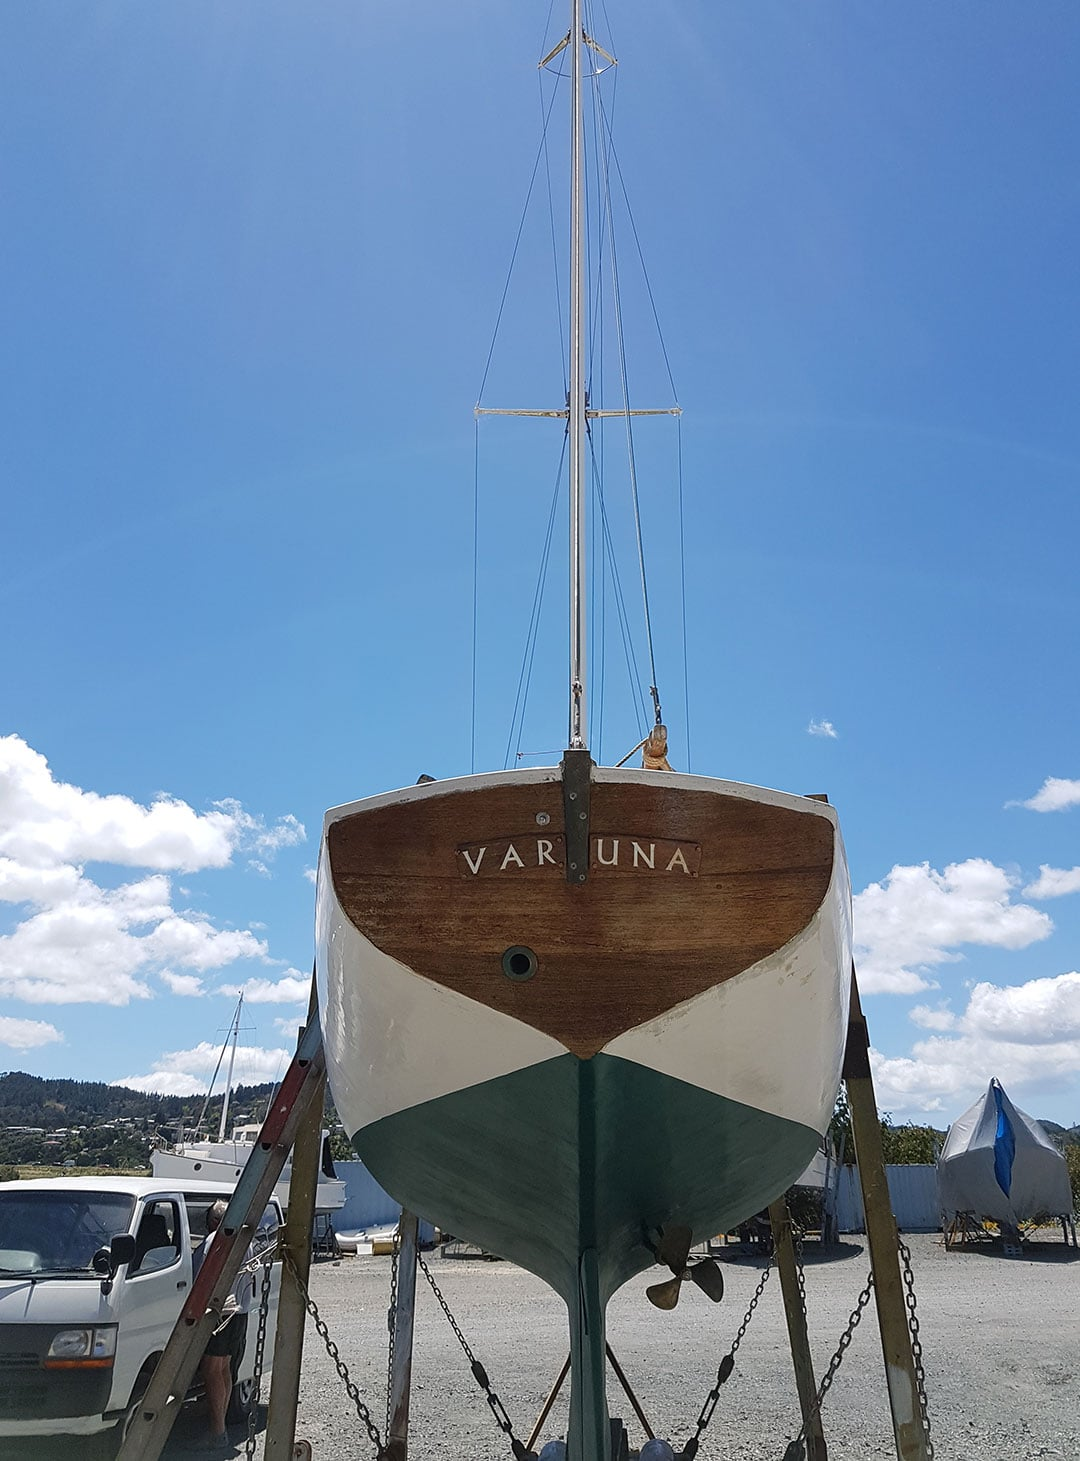 The transom of Y2 VARUNA in dry dock at Whangarei, NZ